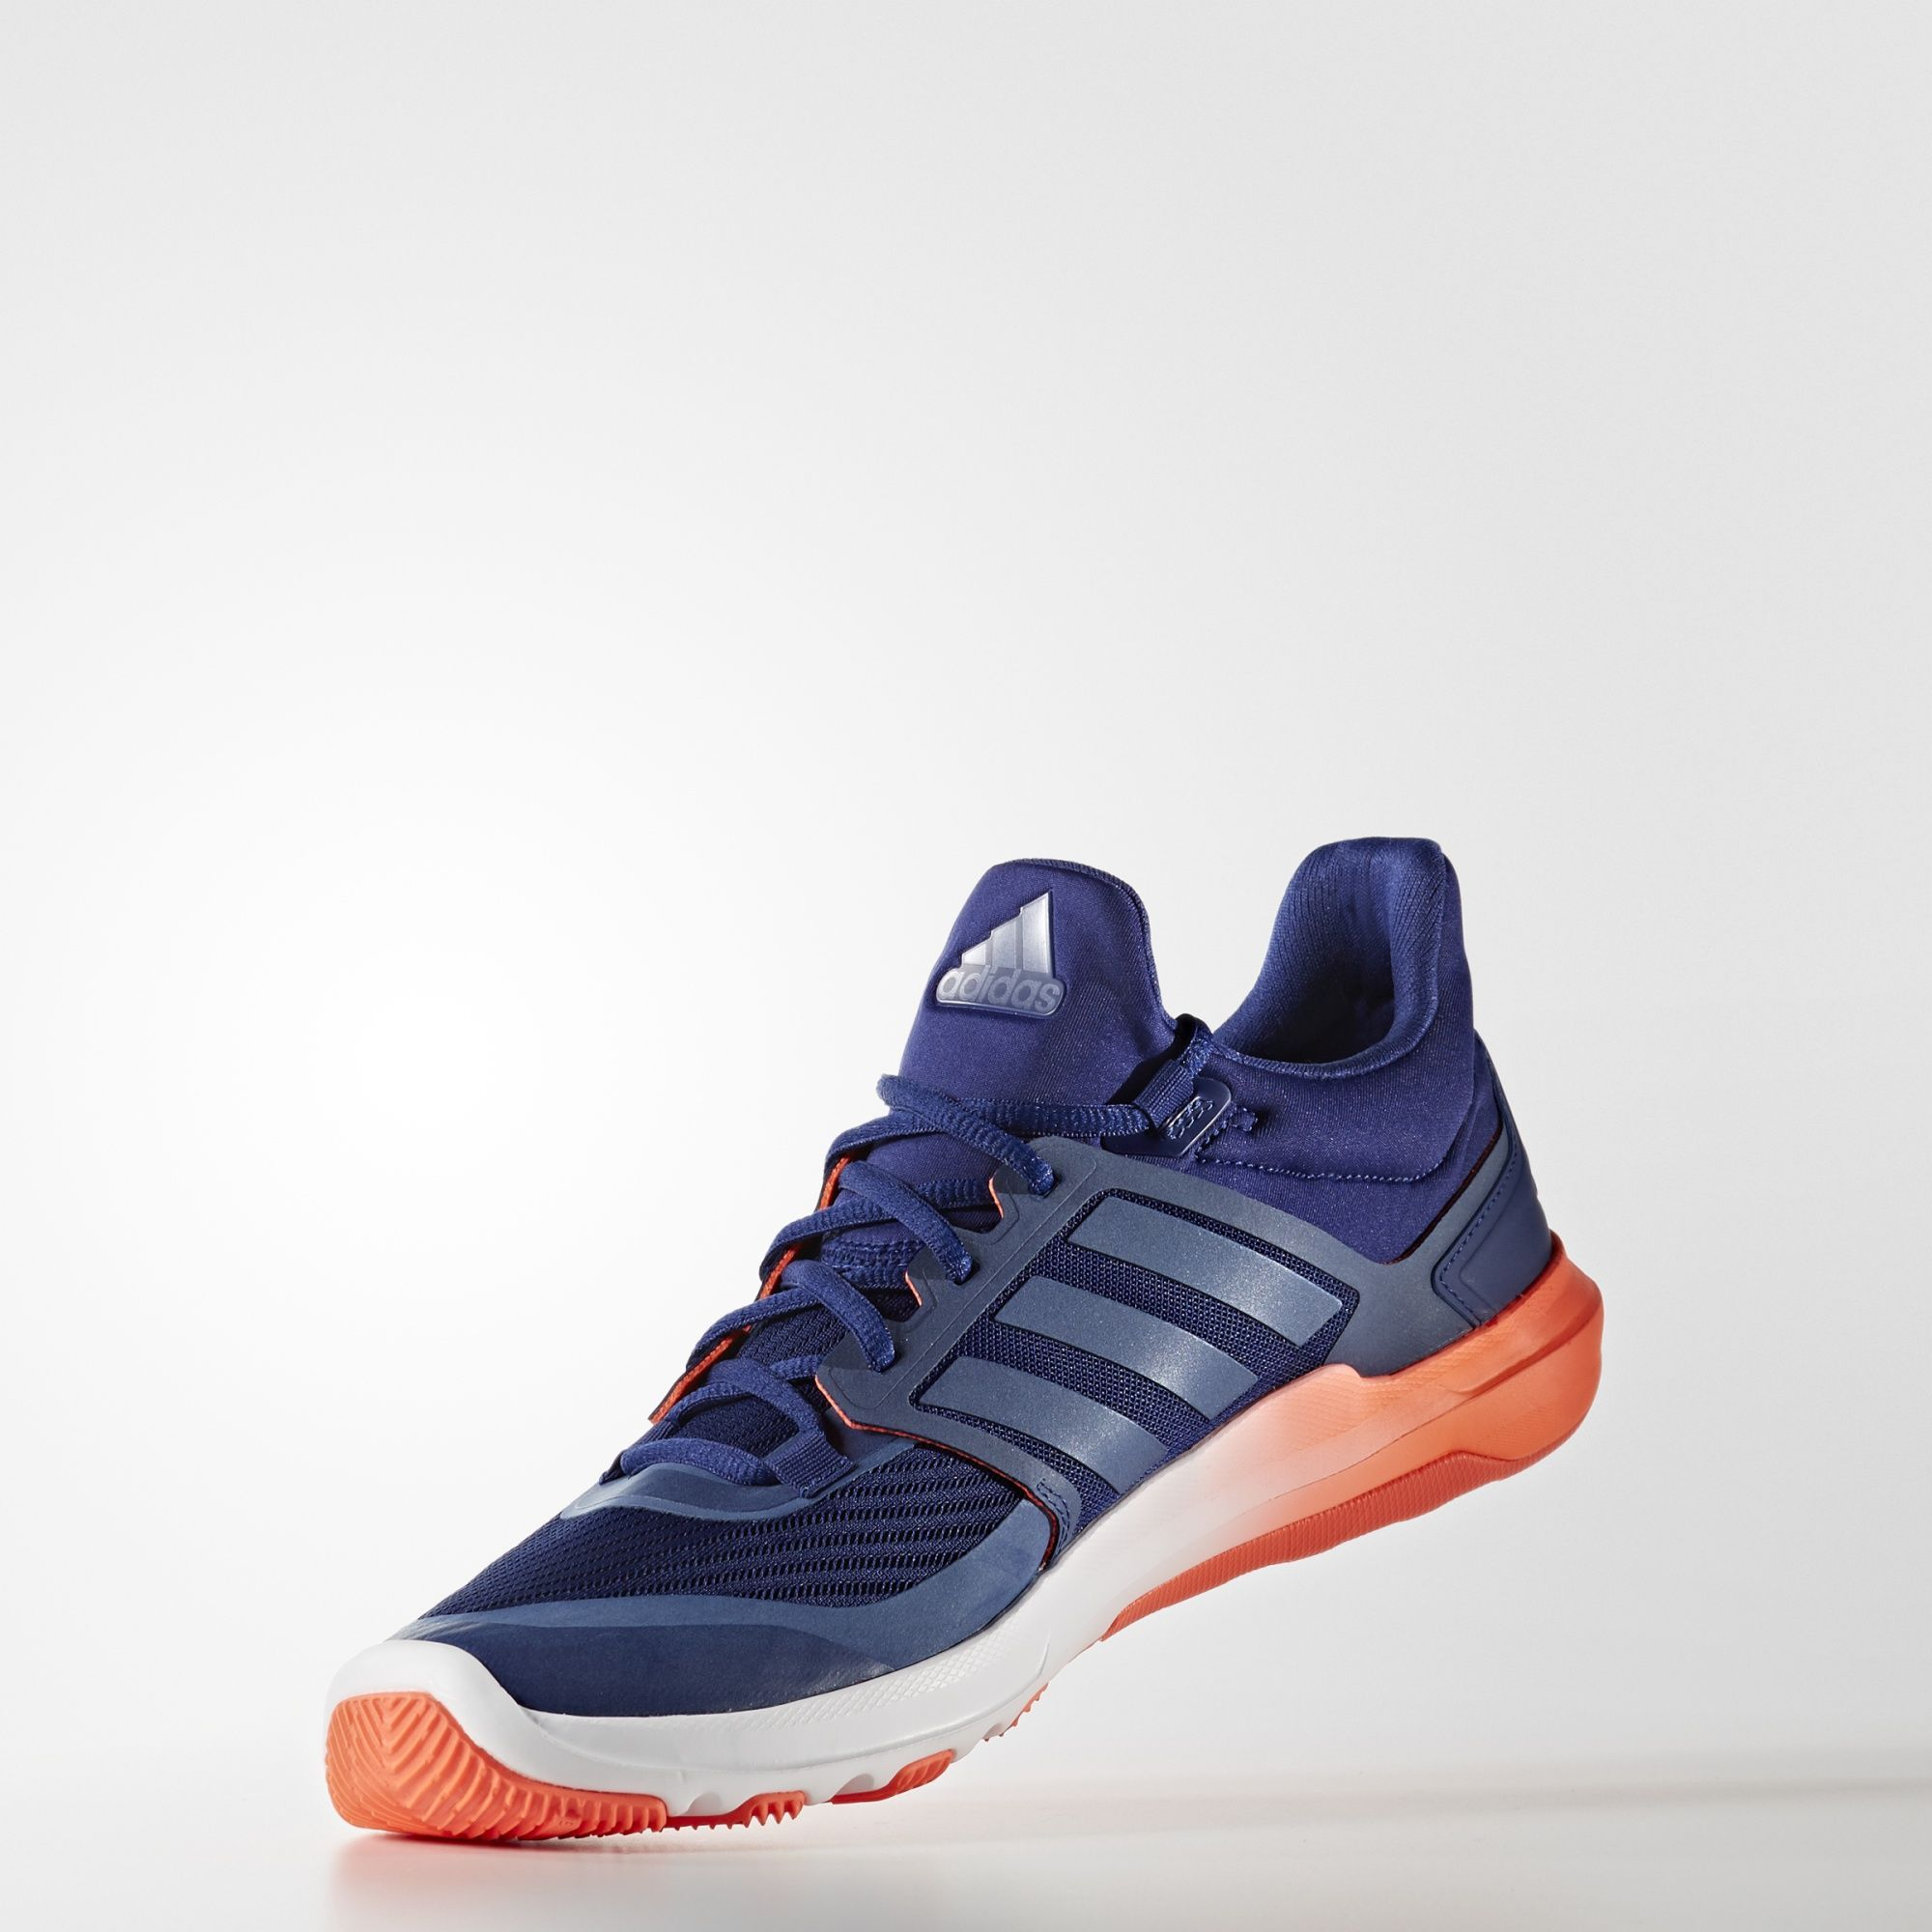 info for c27be 02269 Adidas Adipure 360.3 Mens Shoes Unity Ink Unity Ink Solar Red Aq6135